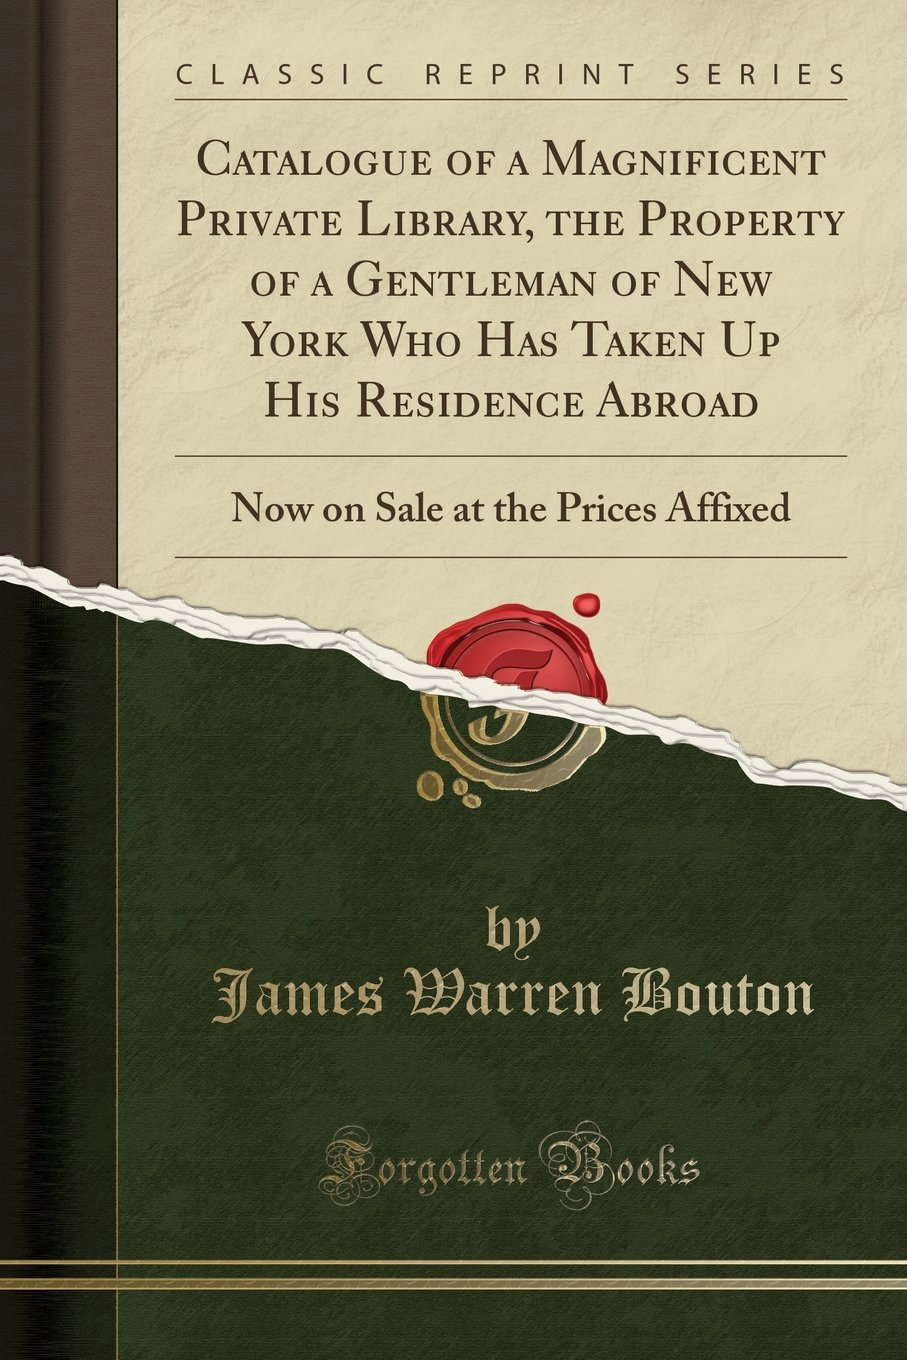 Download Catalogue of a Magnificent Private Library, the Property of a Gentleman of New York Who Has Taken Up His Residence Abroad: Now on Sale at the Prices Affixed (Classic Reprint) ebook